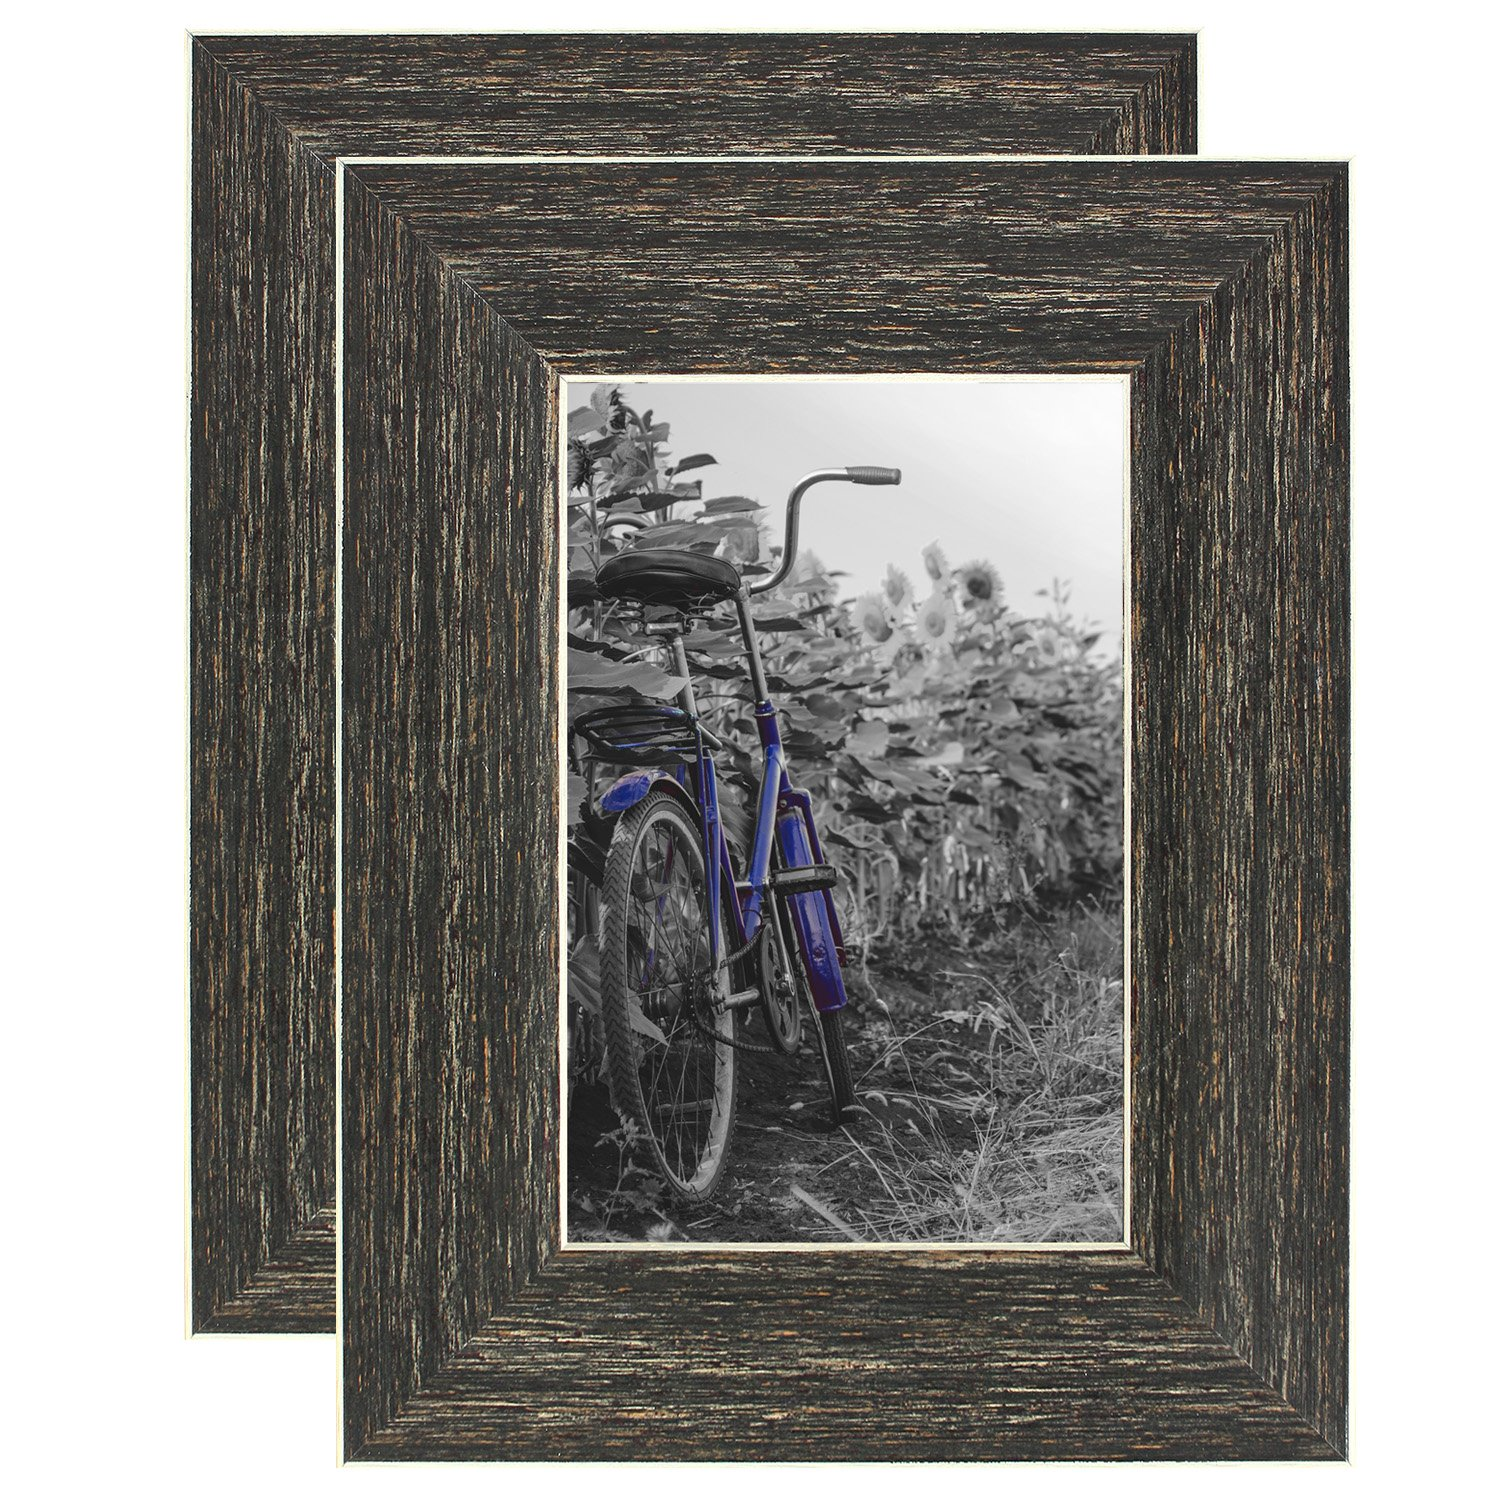 Americanflat 2 Pack - 4x6 Barnwood Rustic Style Picture Frames - Built-in Easels - Wall Display - Tabletop Display by Americanflat